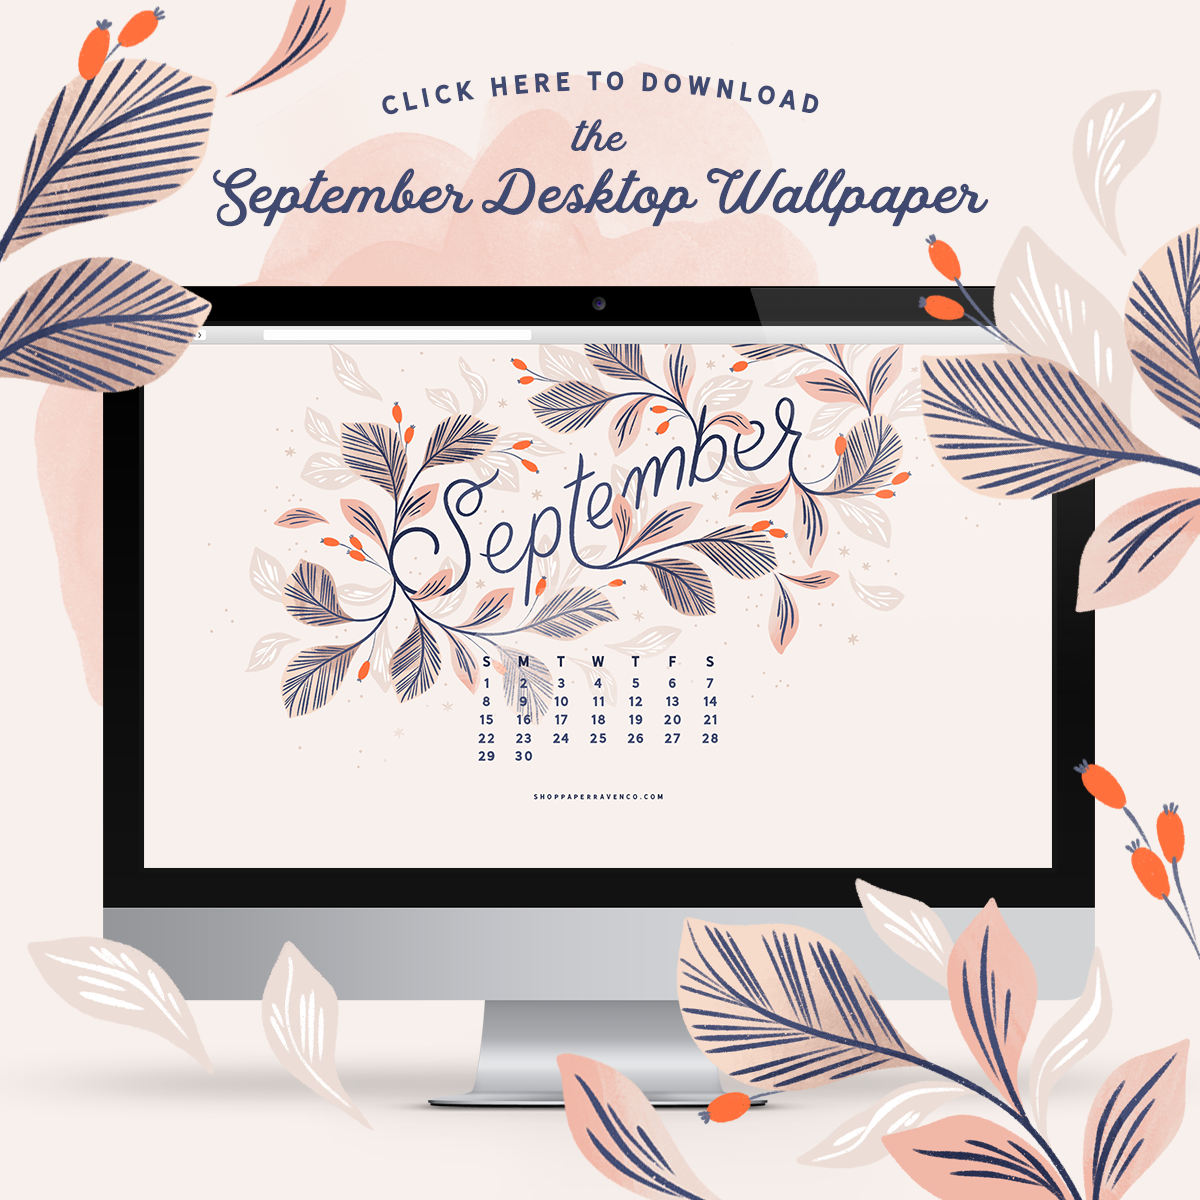 September 2019 Illustrated Desktop Wallpaper by Paper Raven Co. - www.ShopPaperRavenCo.com #desktopwallpaper #dressyourtech #desktopdownload